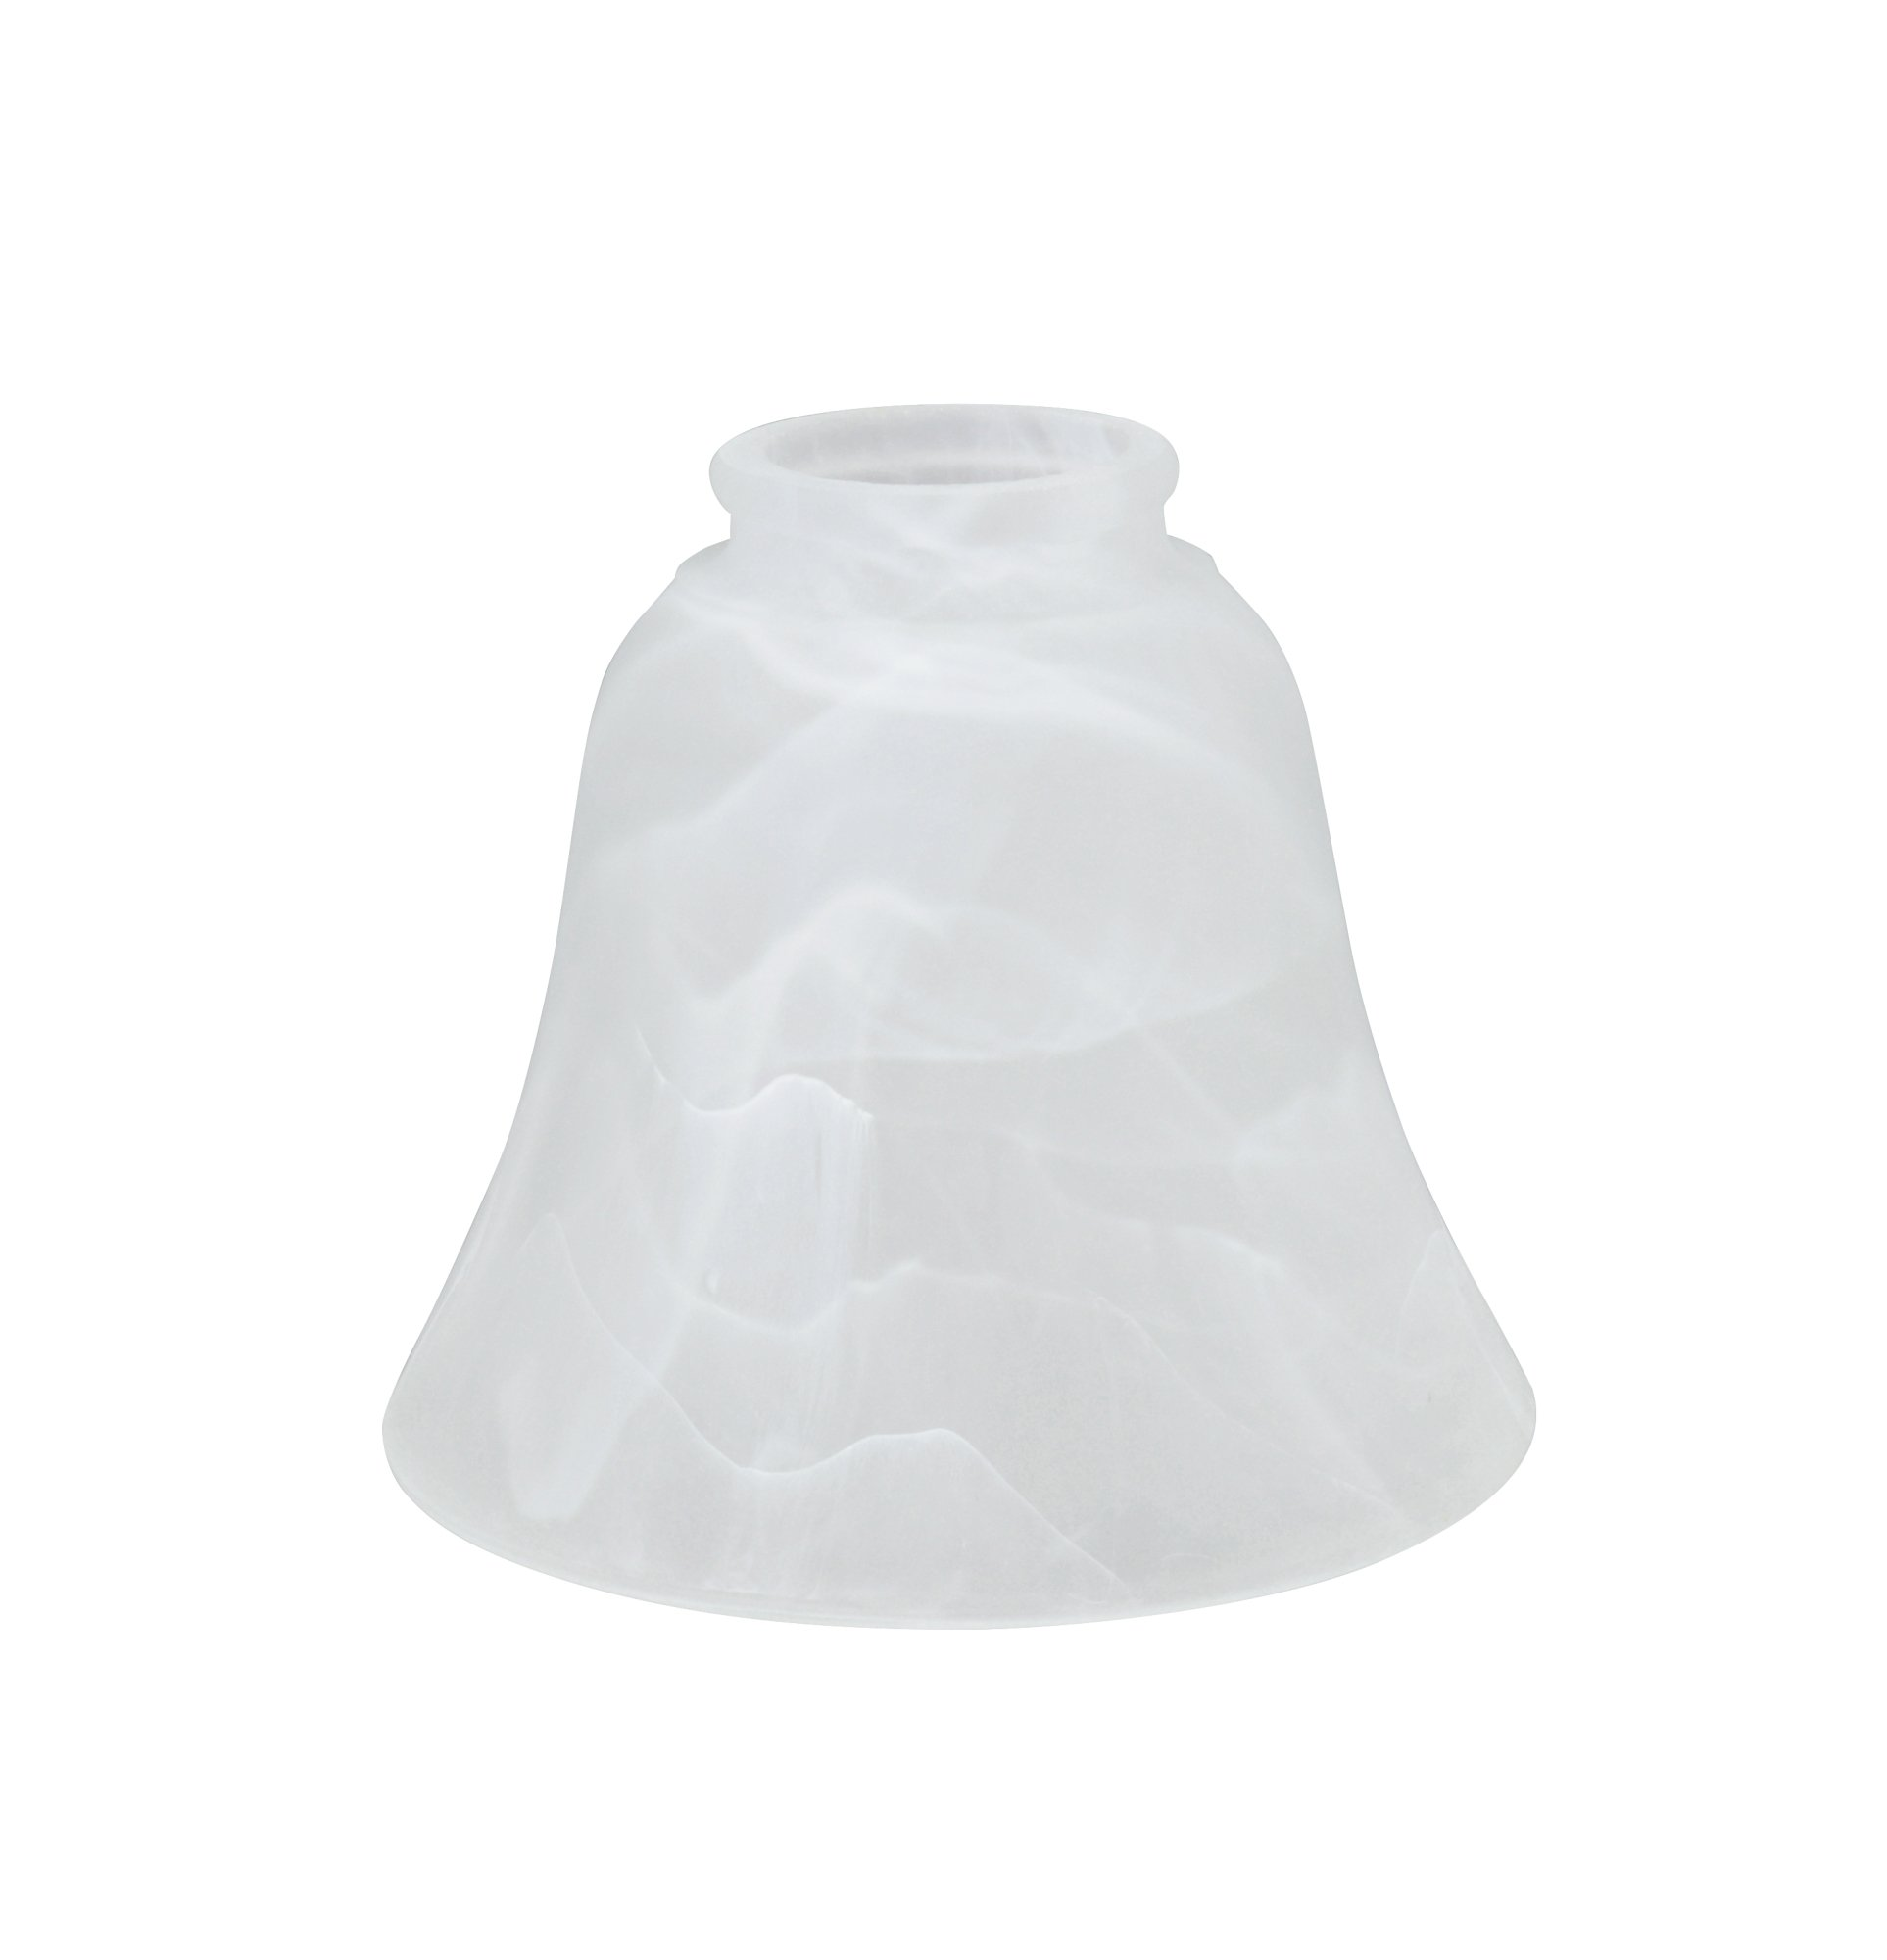 Aspen Creative 23027-4 Transitional Replacement Glass Shade, Alabaster by Aspen Creative (Image #2)